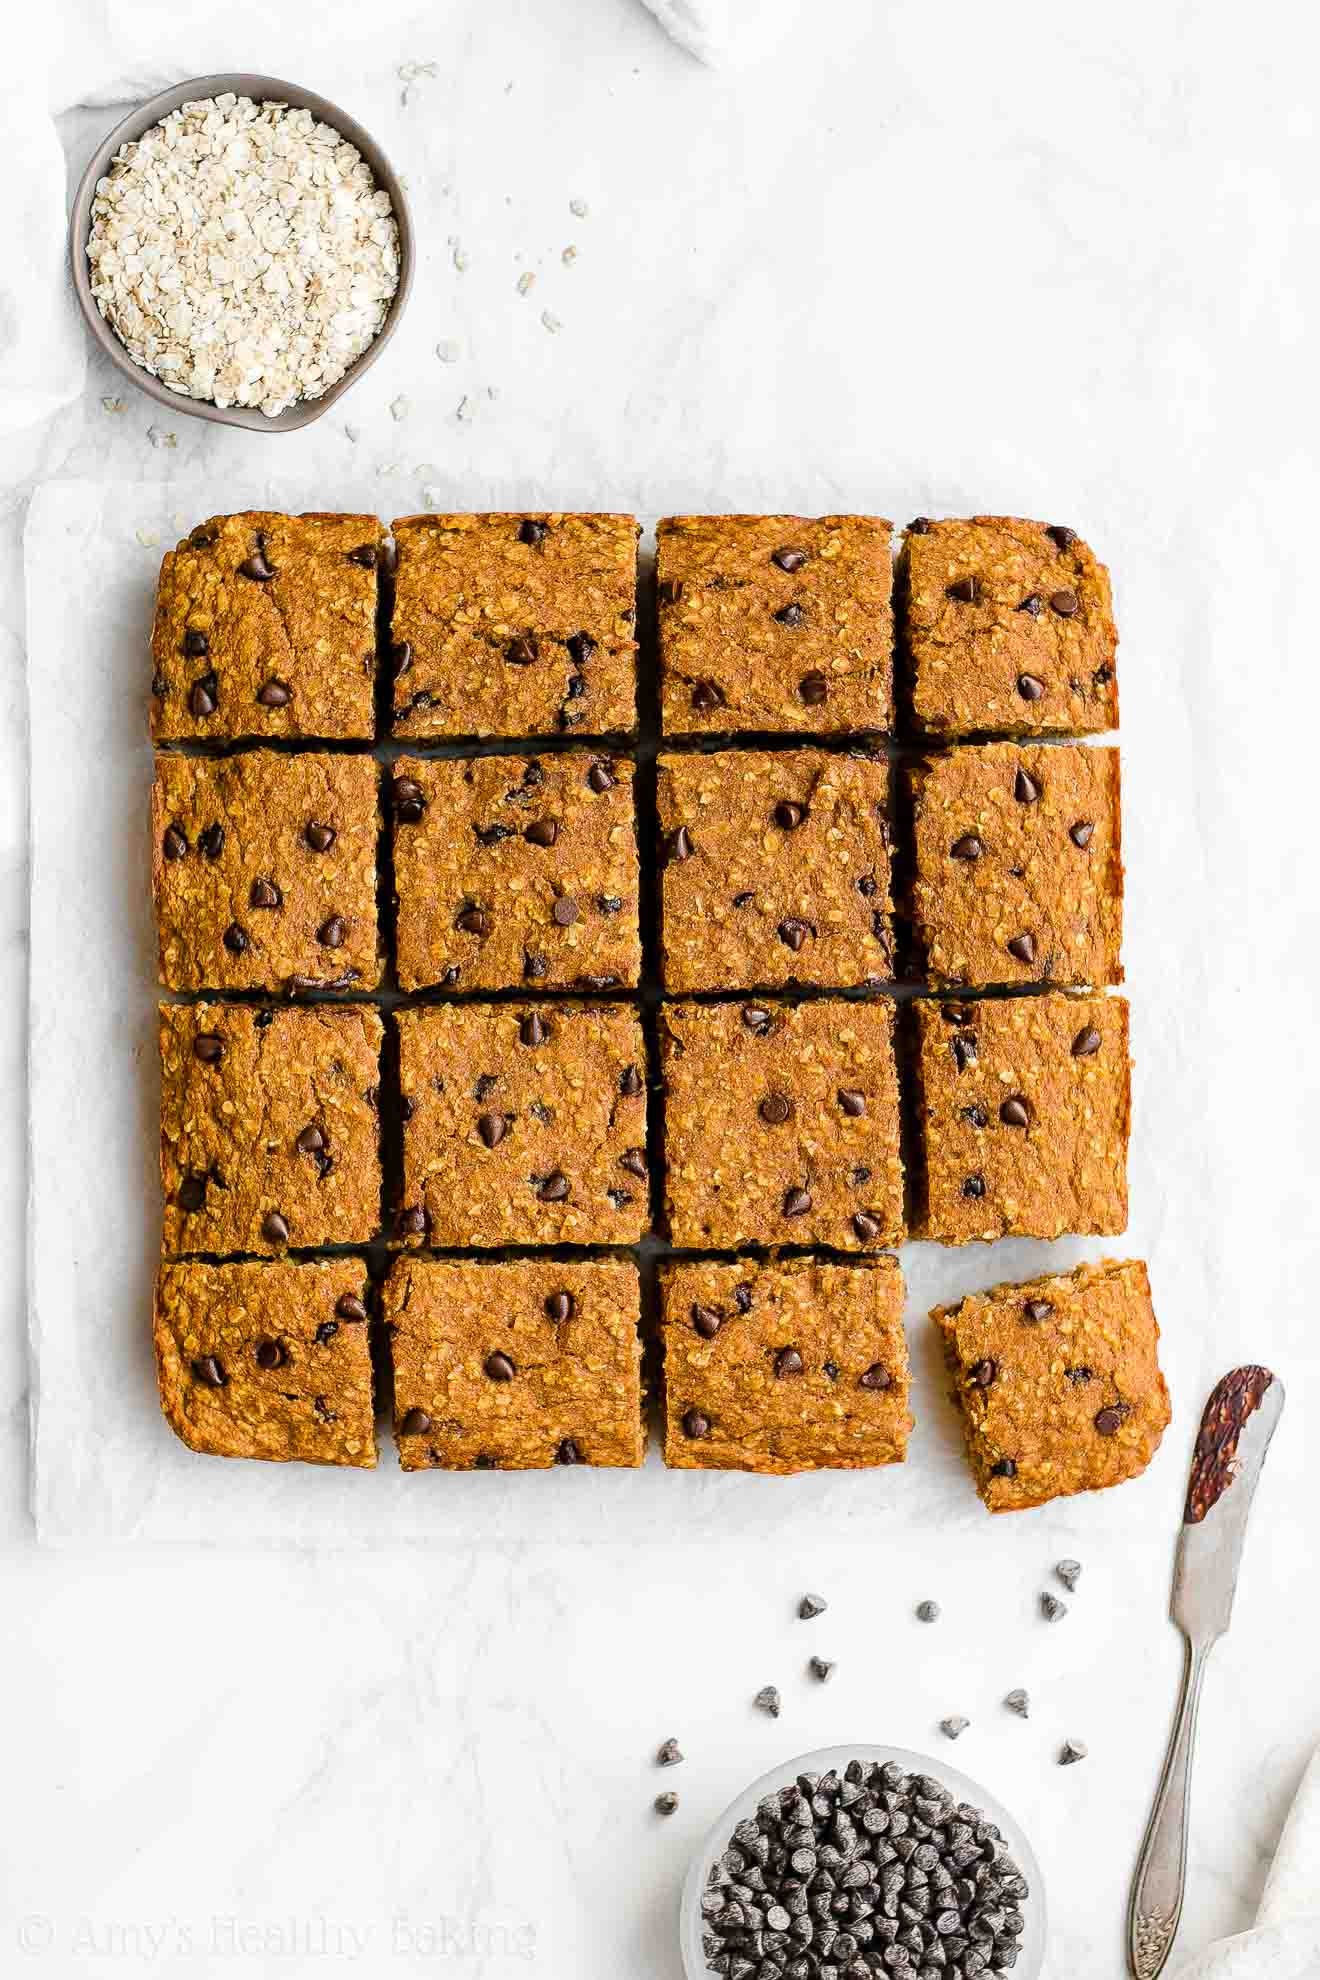 Healthy Homemade Gluten Free Pumpkin Chocolate Chip Oatmeal Snack Cake